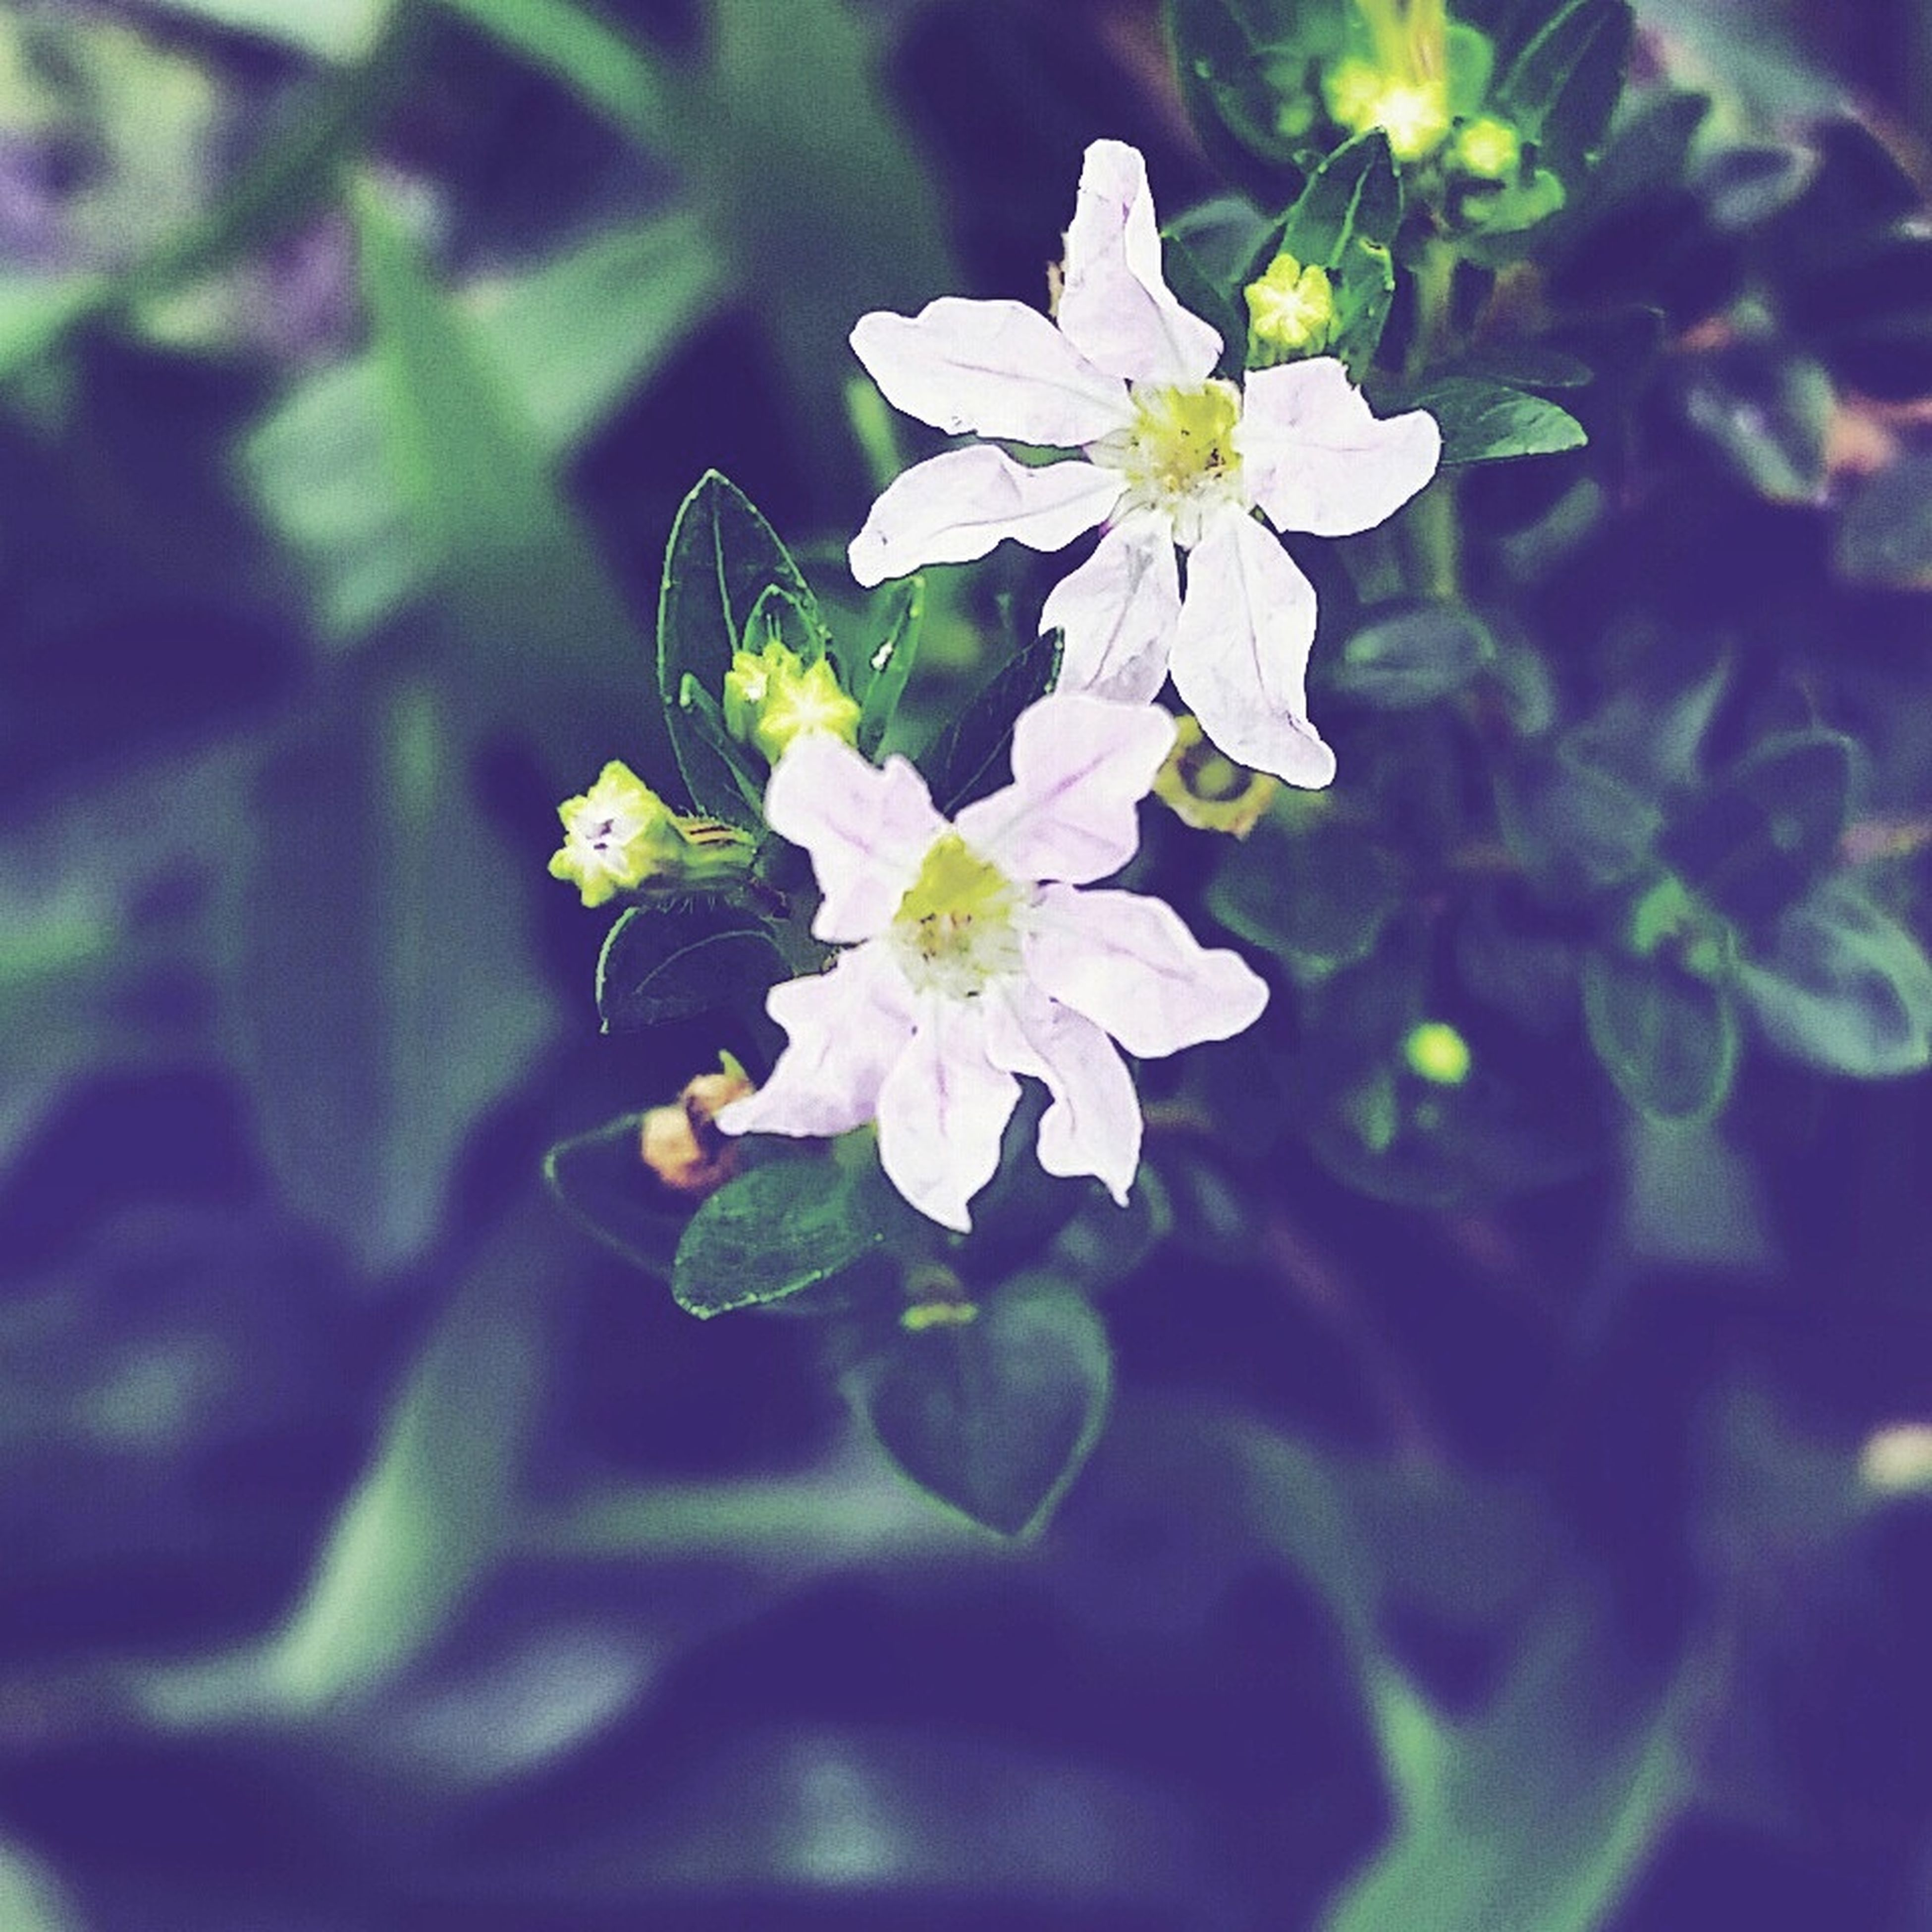 flower, freshness, fragility, growth, petal, beauty in nature, flower head, close-up, nature, blooming, focus on foreground, plant, white color, leaf, in bloom, selective focus, blossom, outdoors, day, springtime